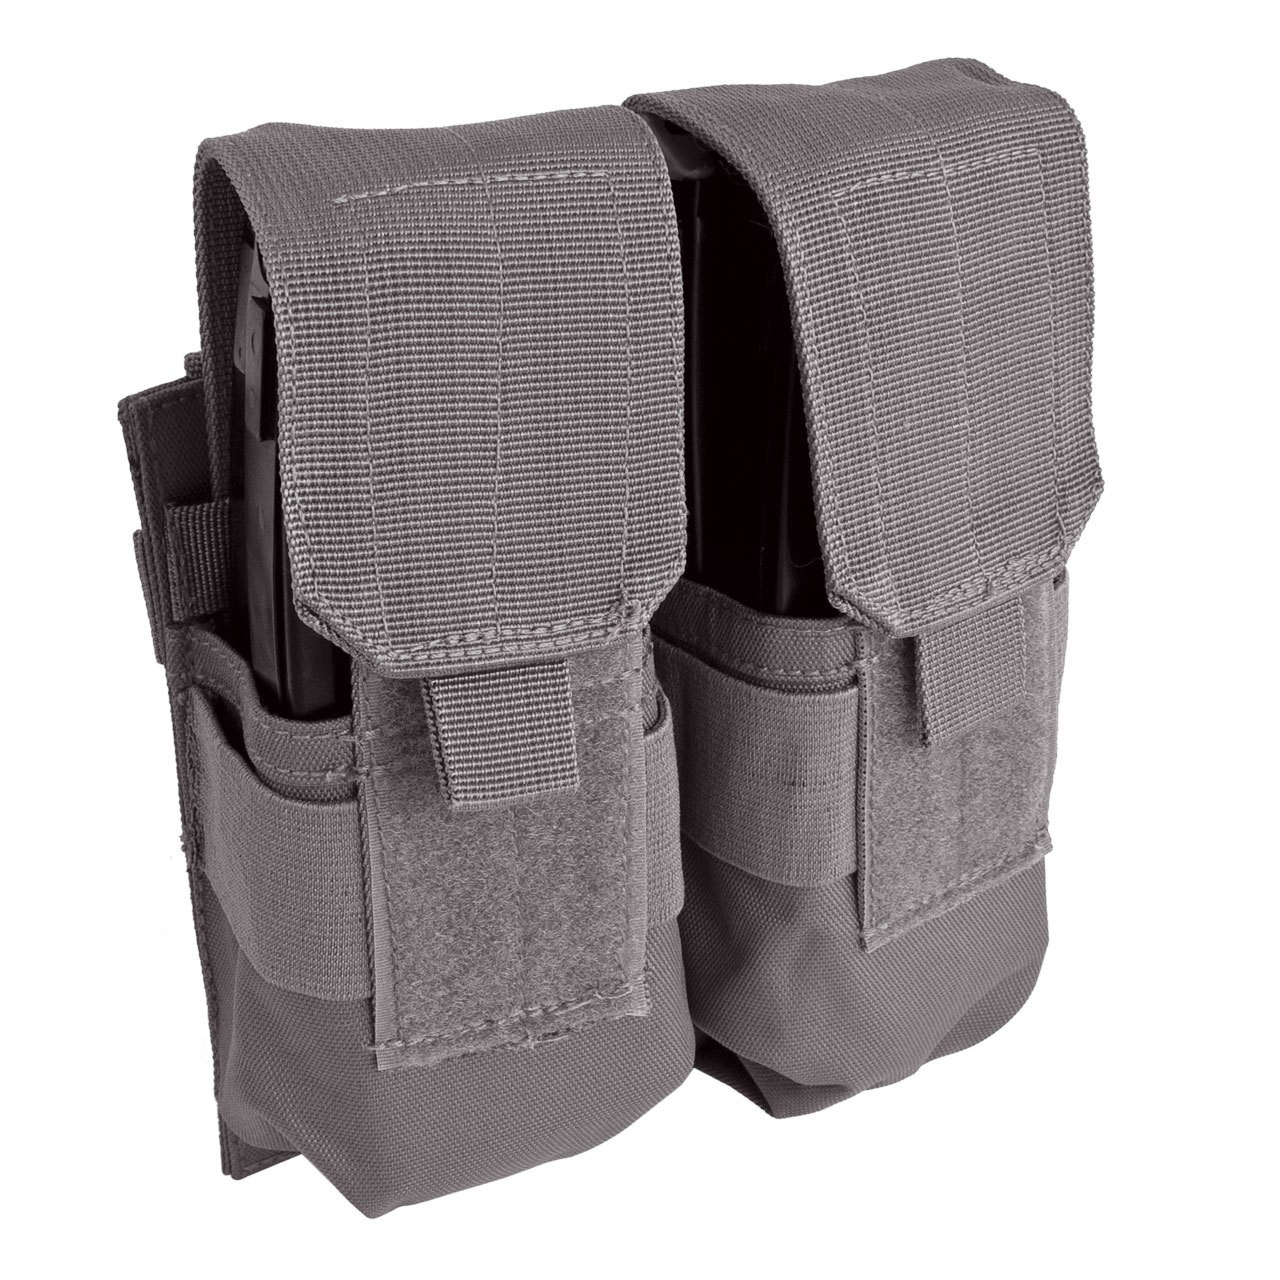 Red Rock Gear MOLLE Double Rifle Mag Pouch